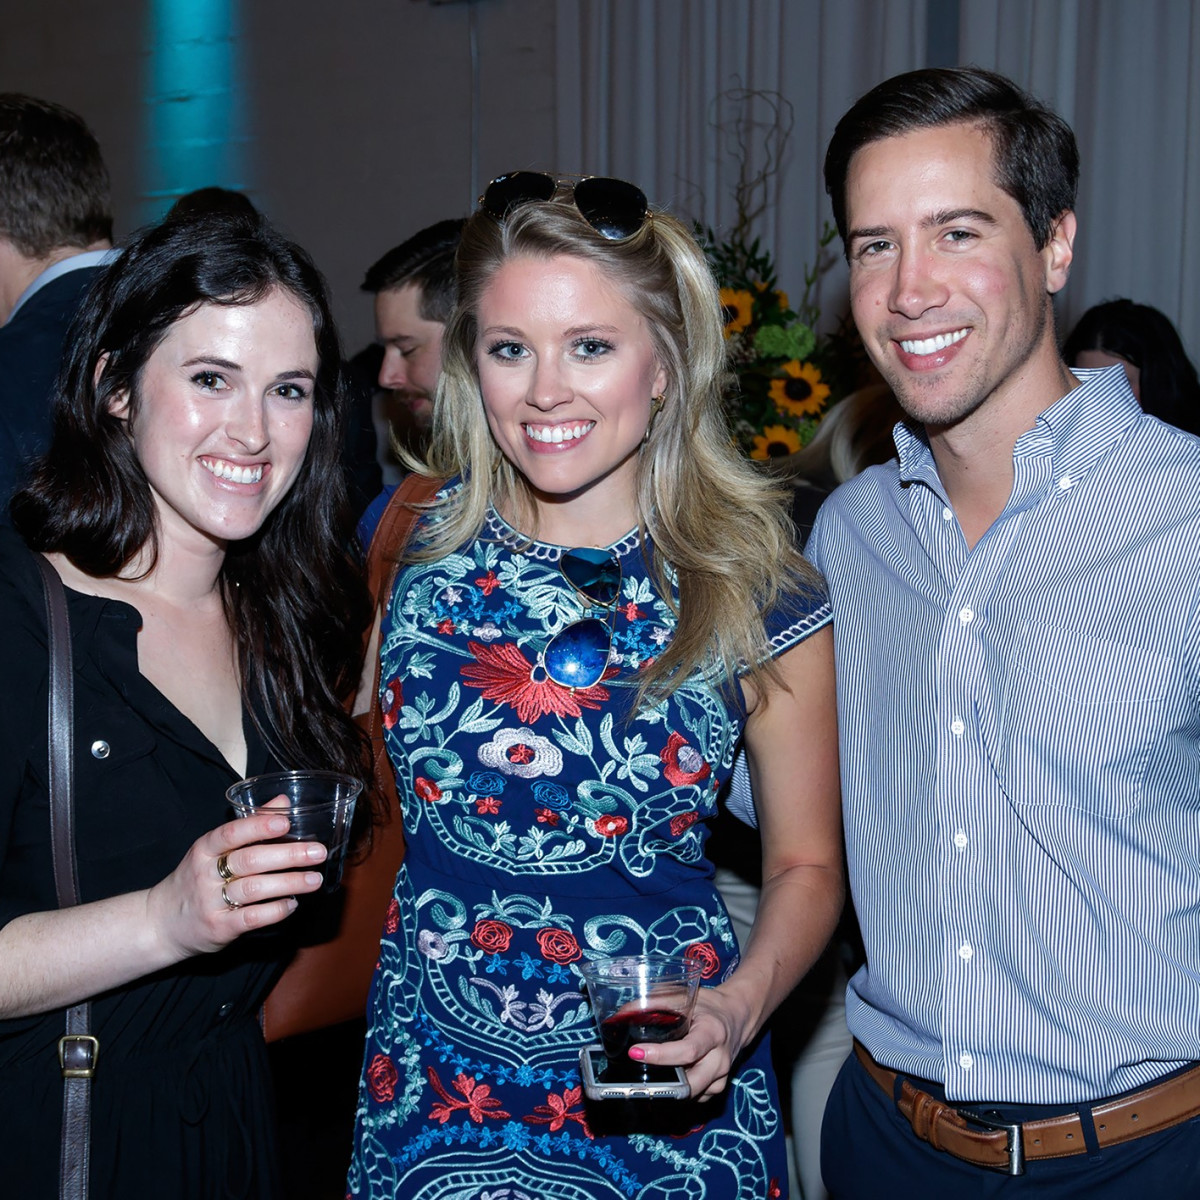 Dallas Tastemaker Awards 2018, Samantha Matthews, Brooke Williamson, Daniel Jensen